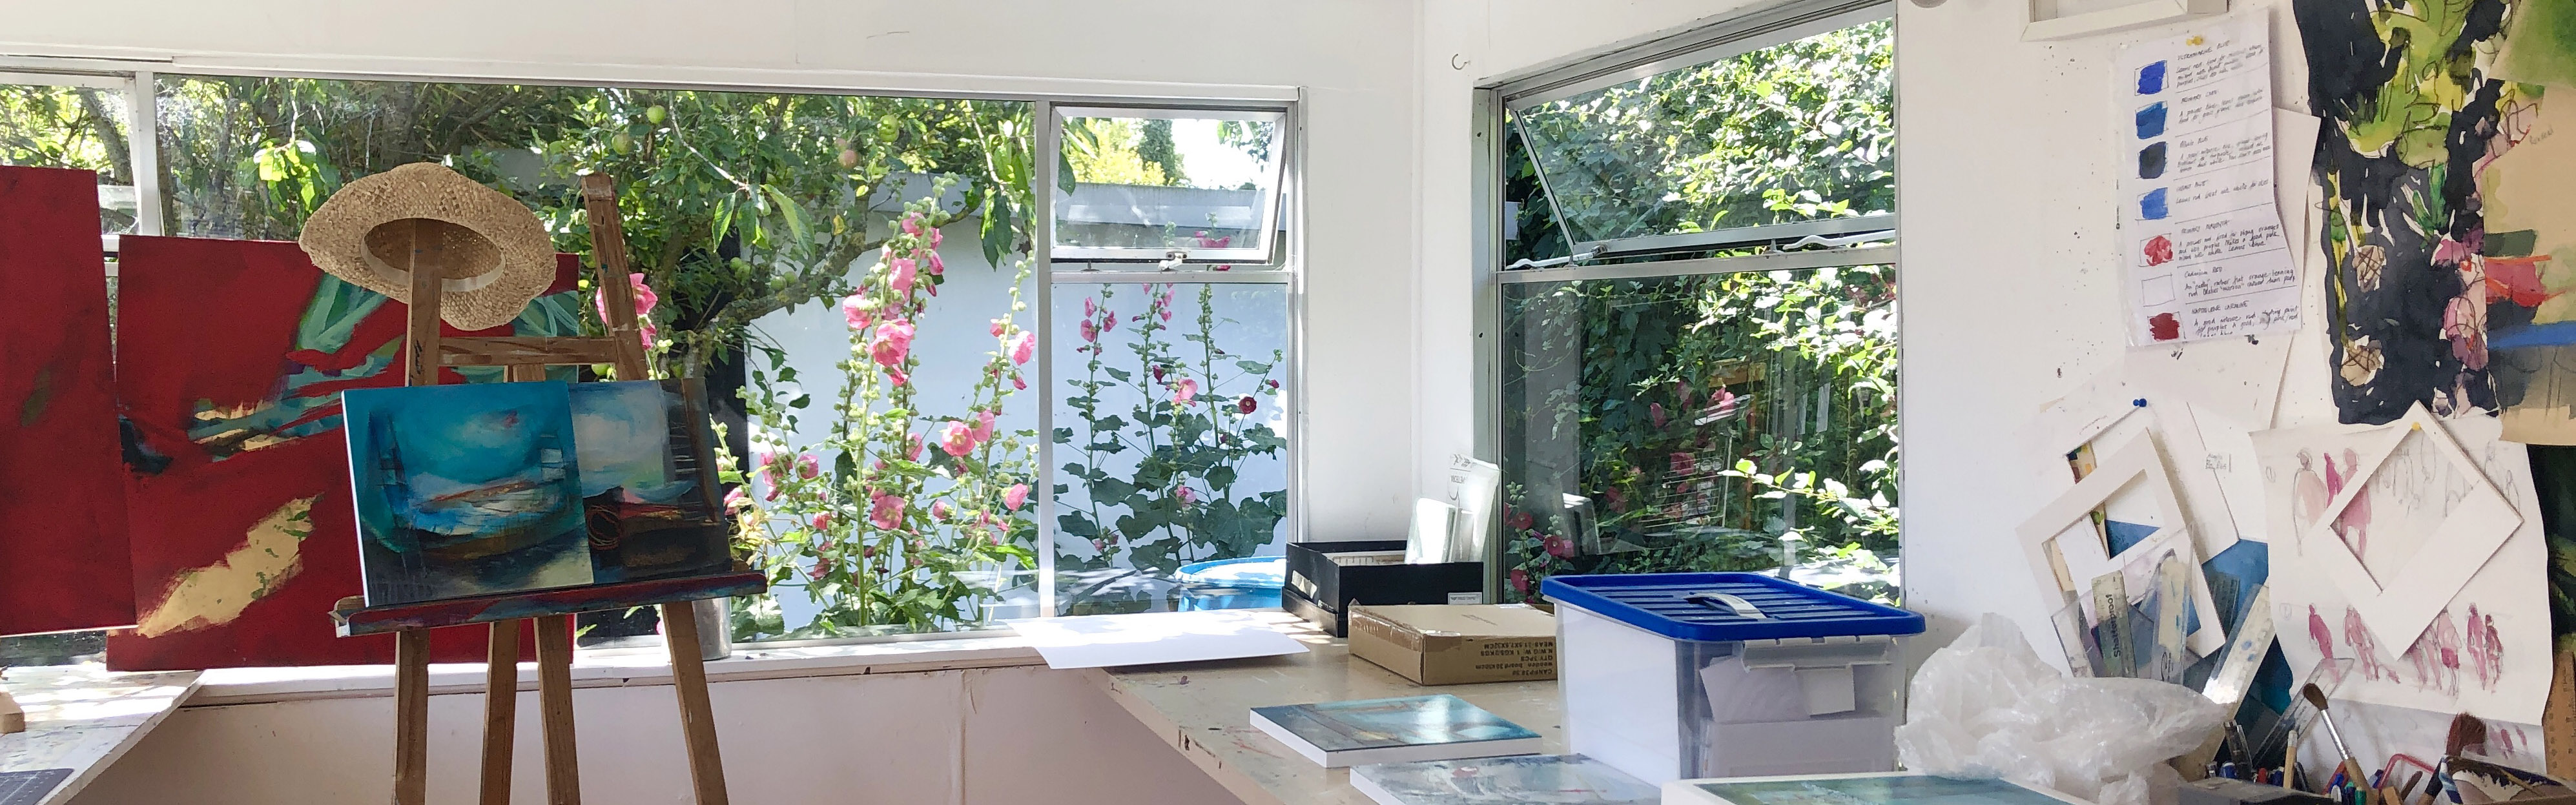 An image of an easel next to a window opening out onto a garden full of pink flowers